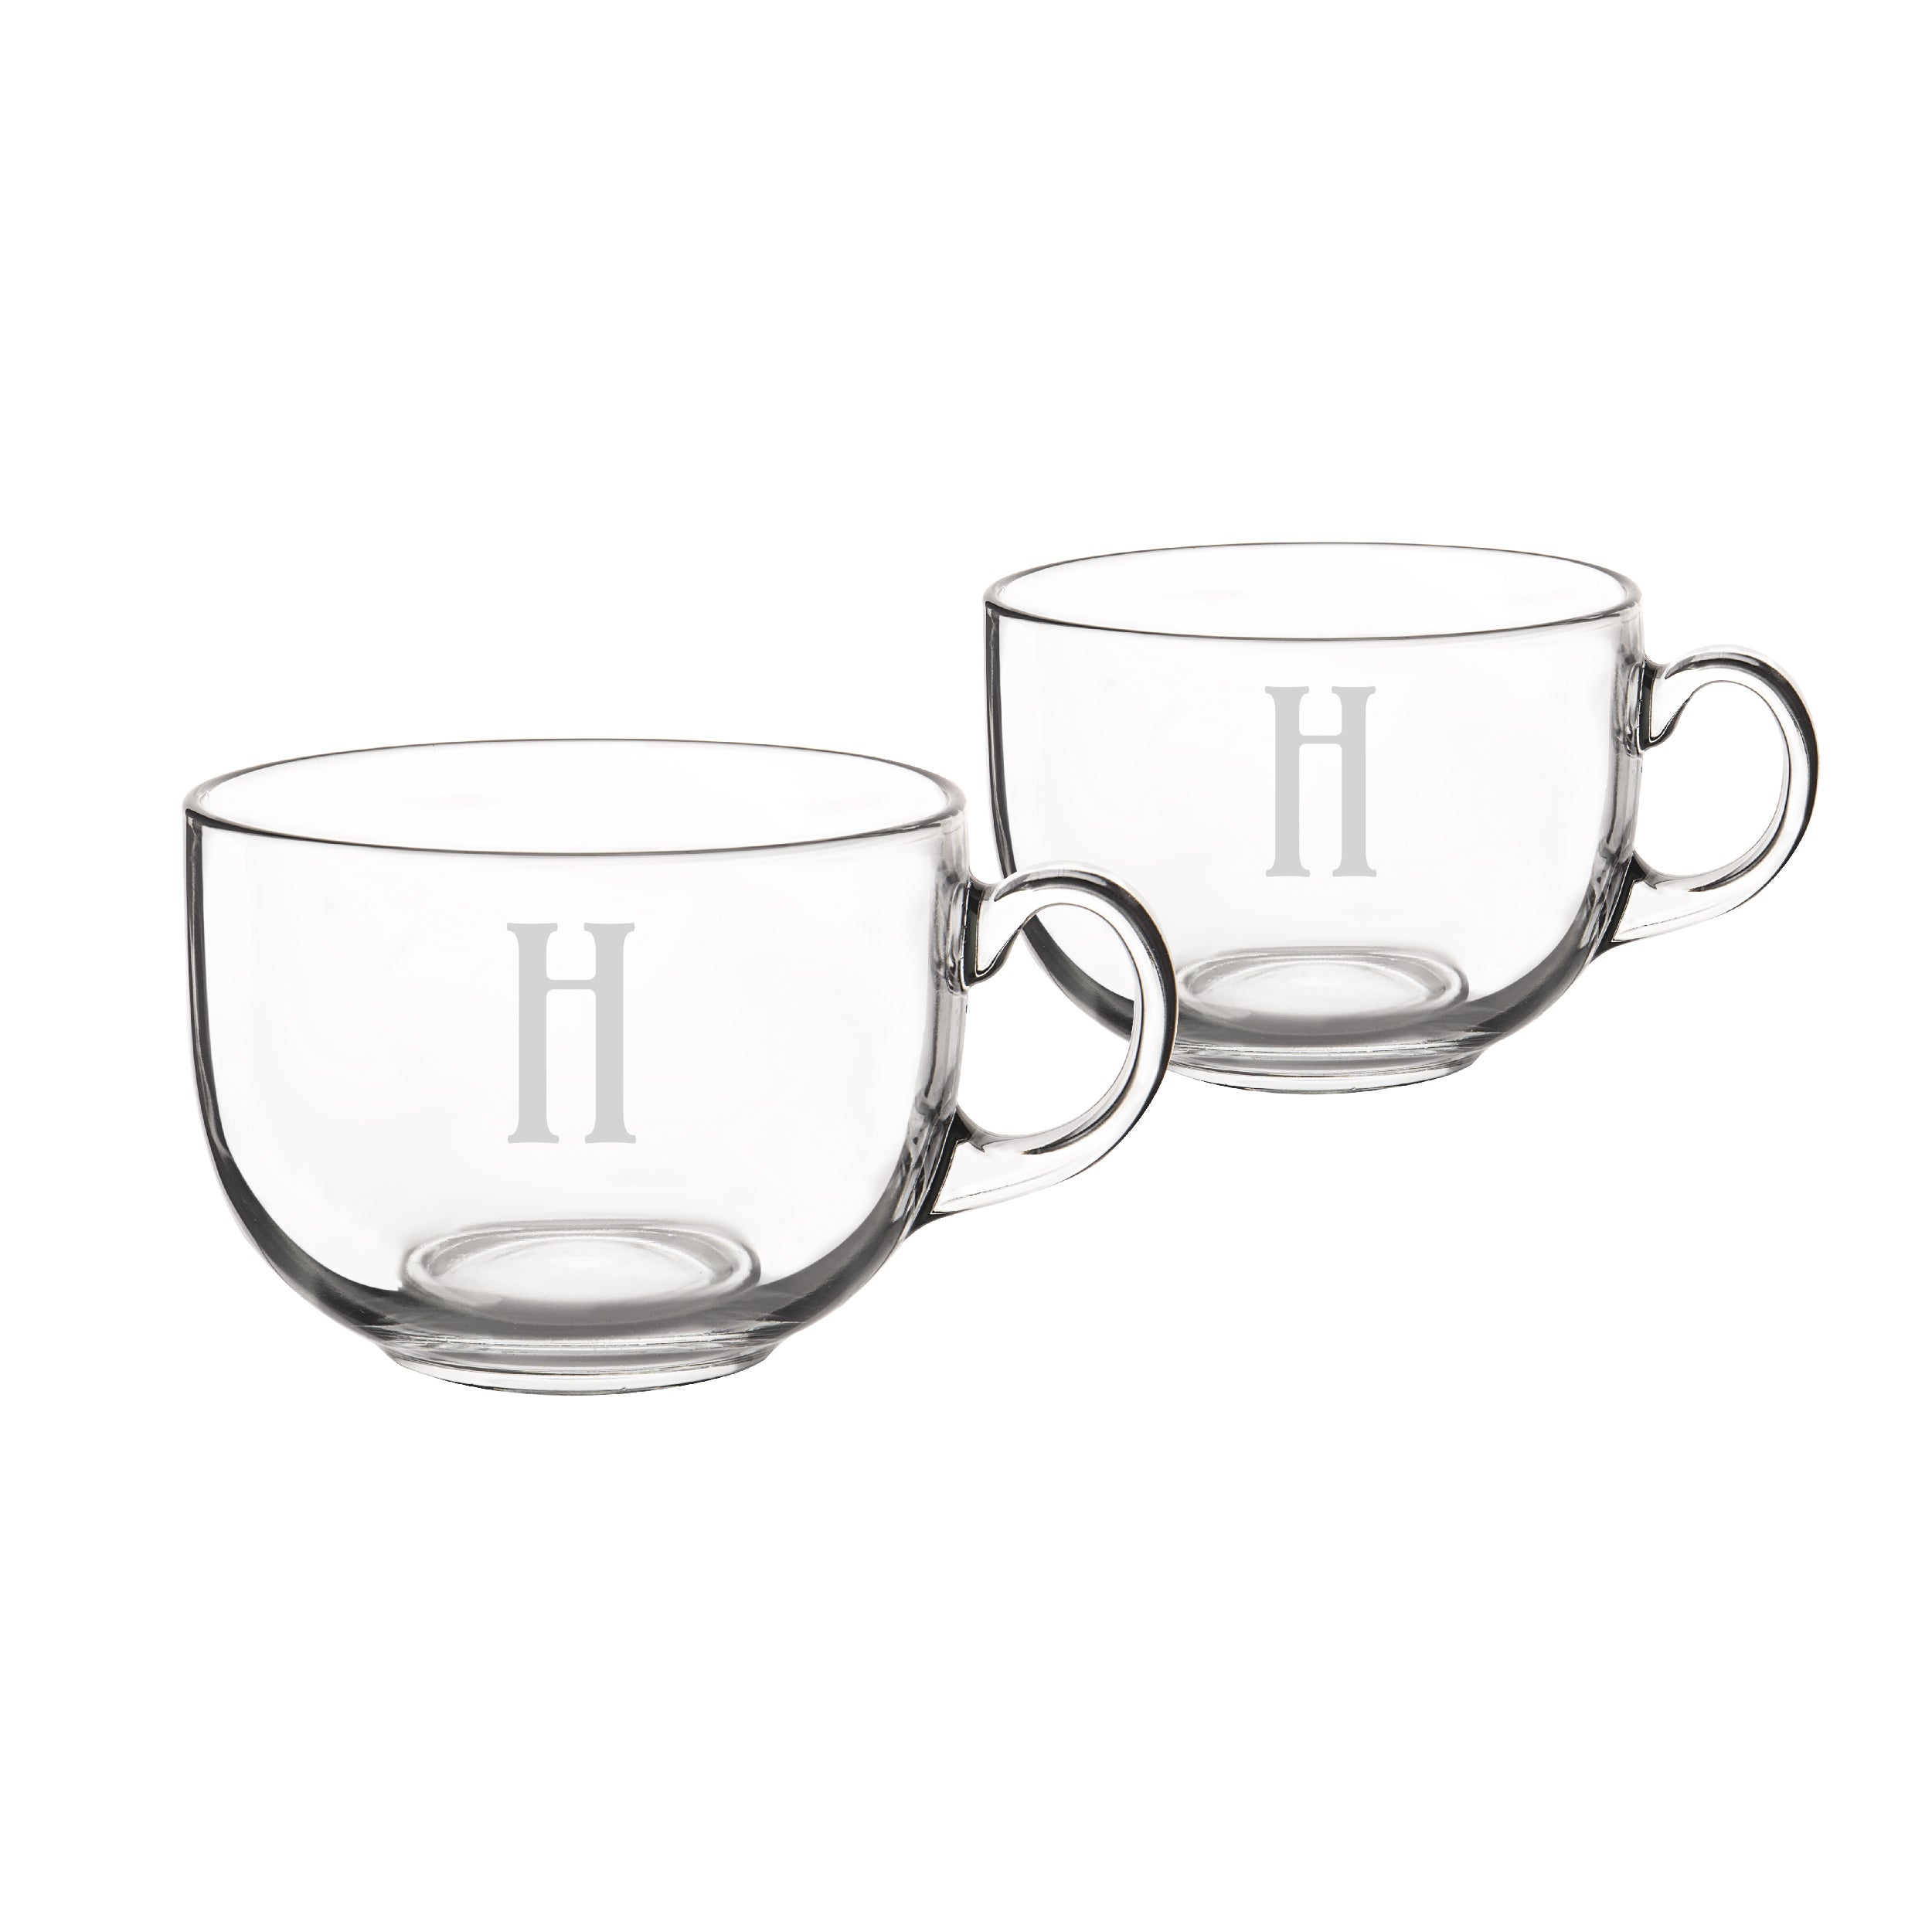 Personalized Large 22 Oz Gl Coffee Mugs Set Of 2 Free Shipping On Orders Over 45 19066688